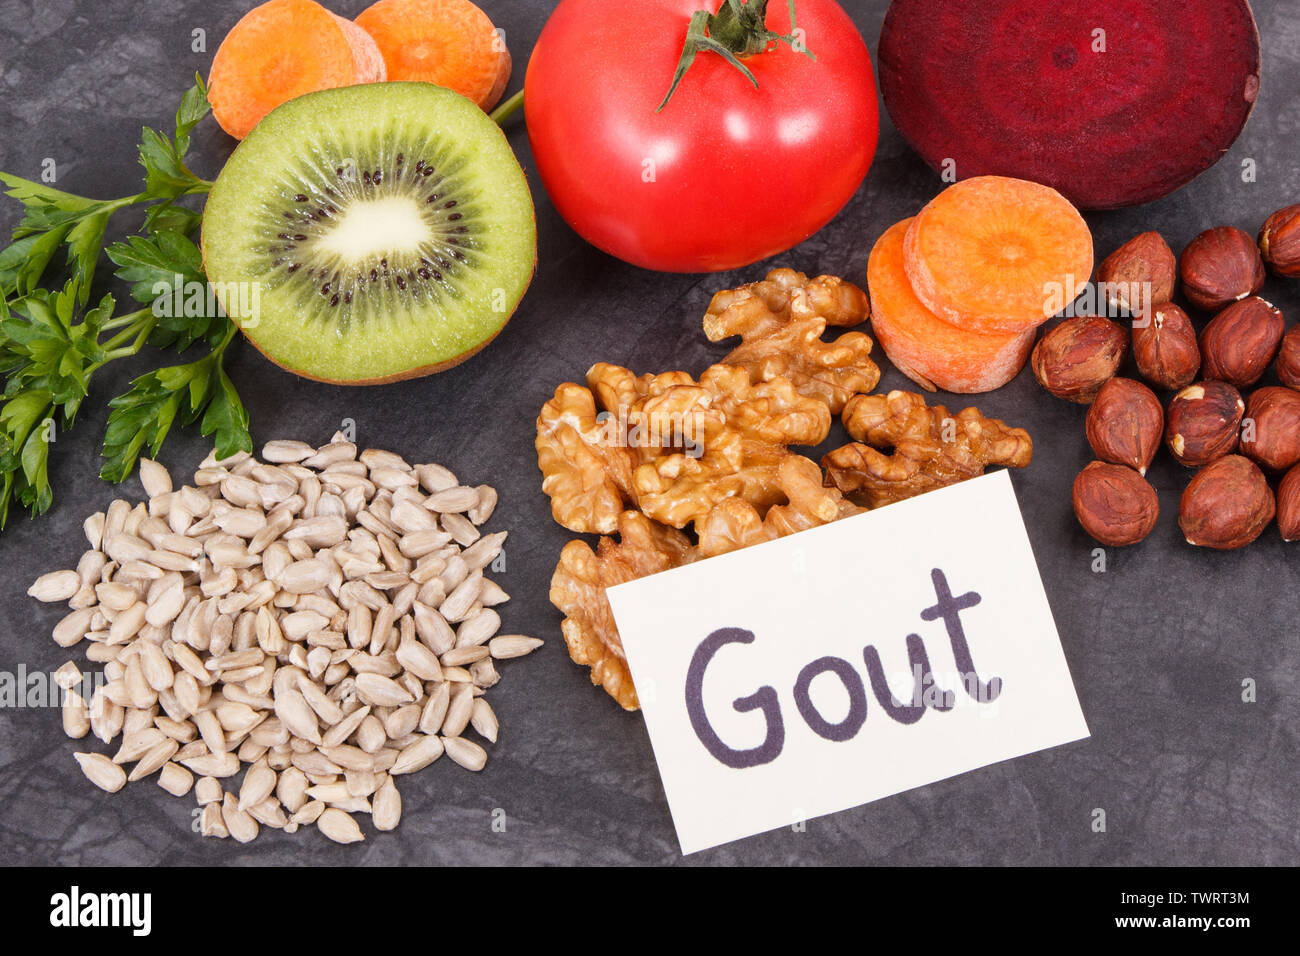 Best nutritious food for kidneys health and gout inflammation. Concept of healthy eating as source natural vitamins - Stock Image